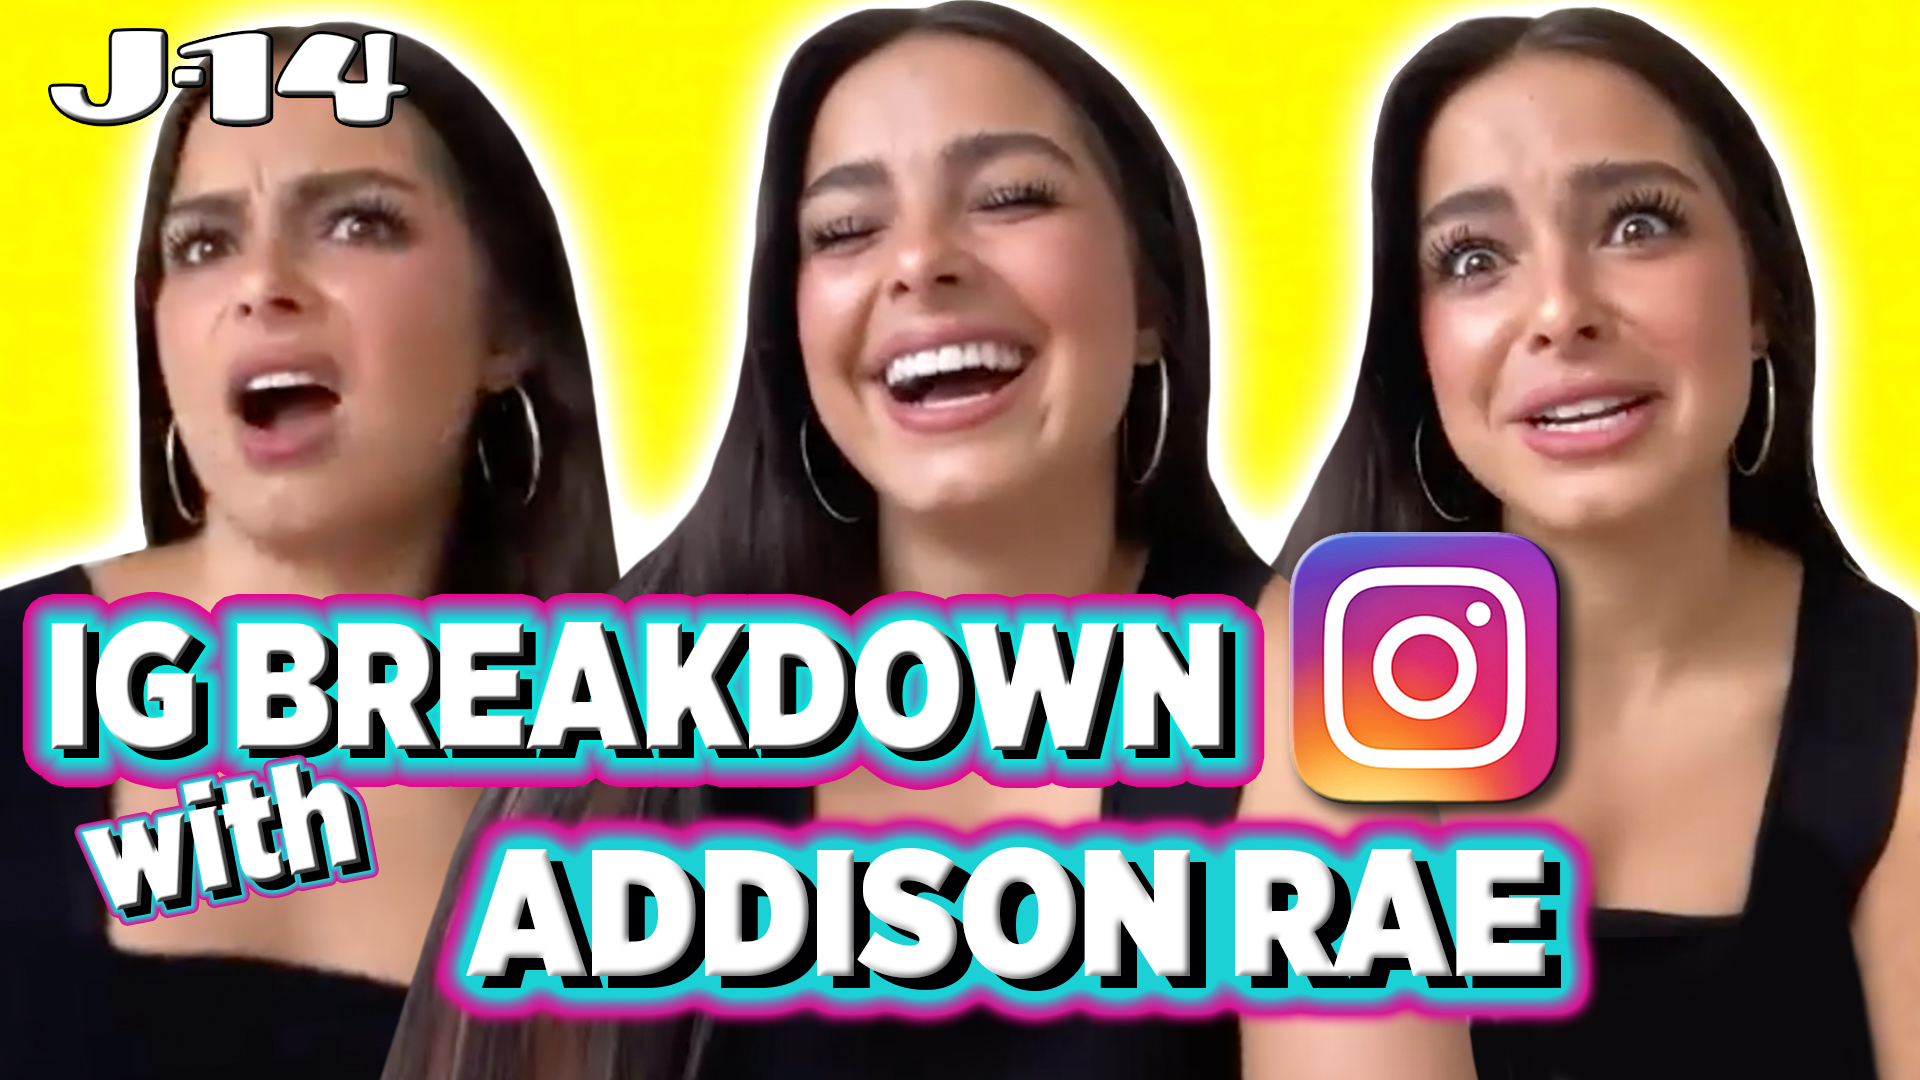 Addison Rae Breaks Down Instagram Posts Reacts To Her Old Pics